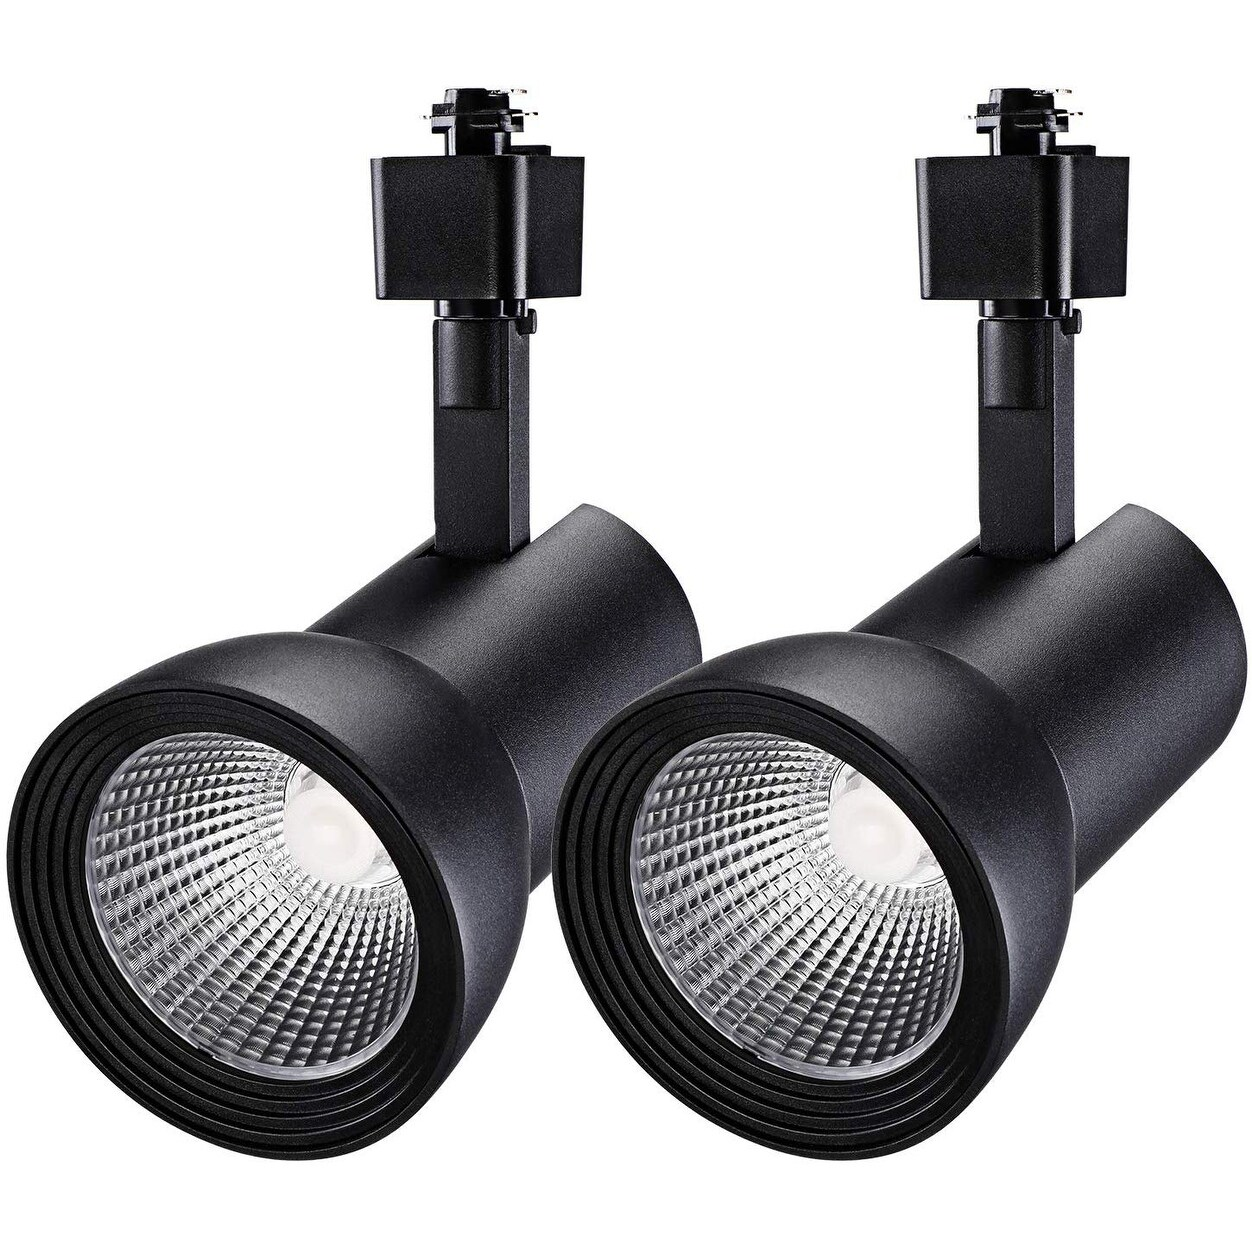 2 Pack 18w Aluminum Led Track Lighting Heads 4000k Cool White Black White